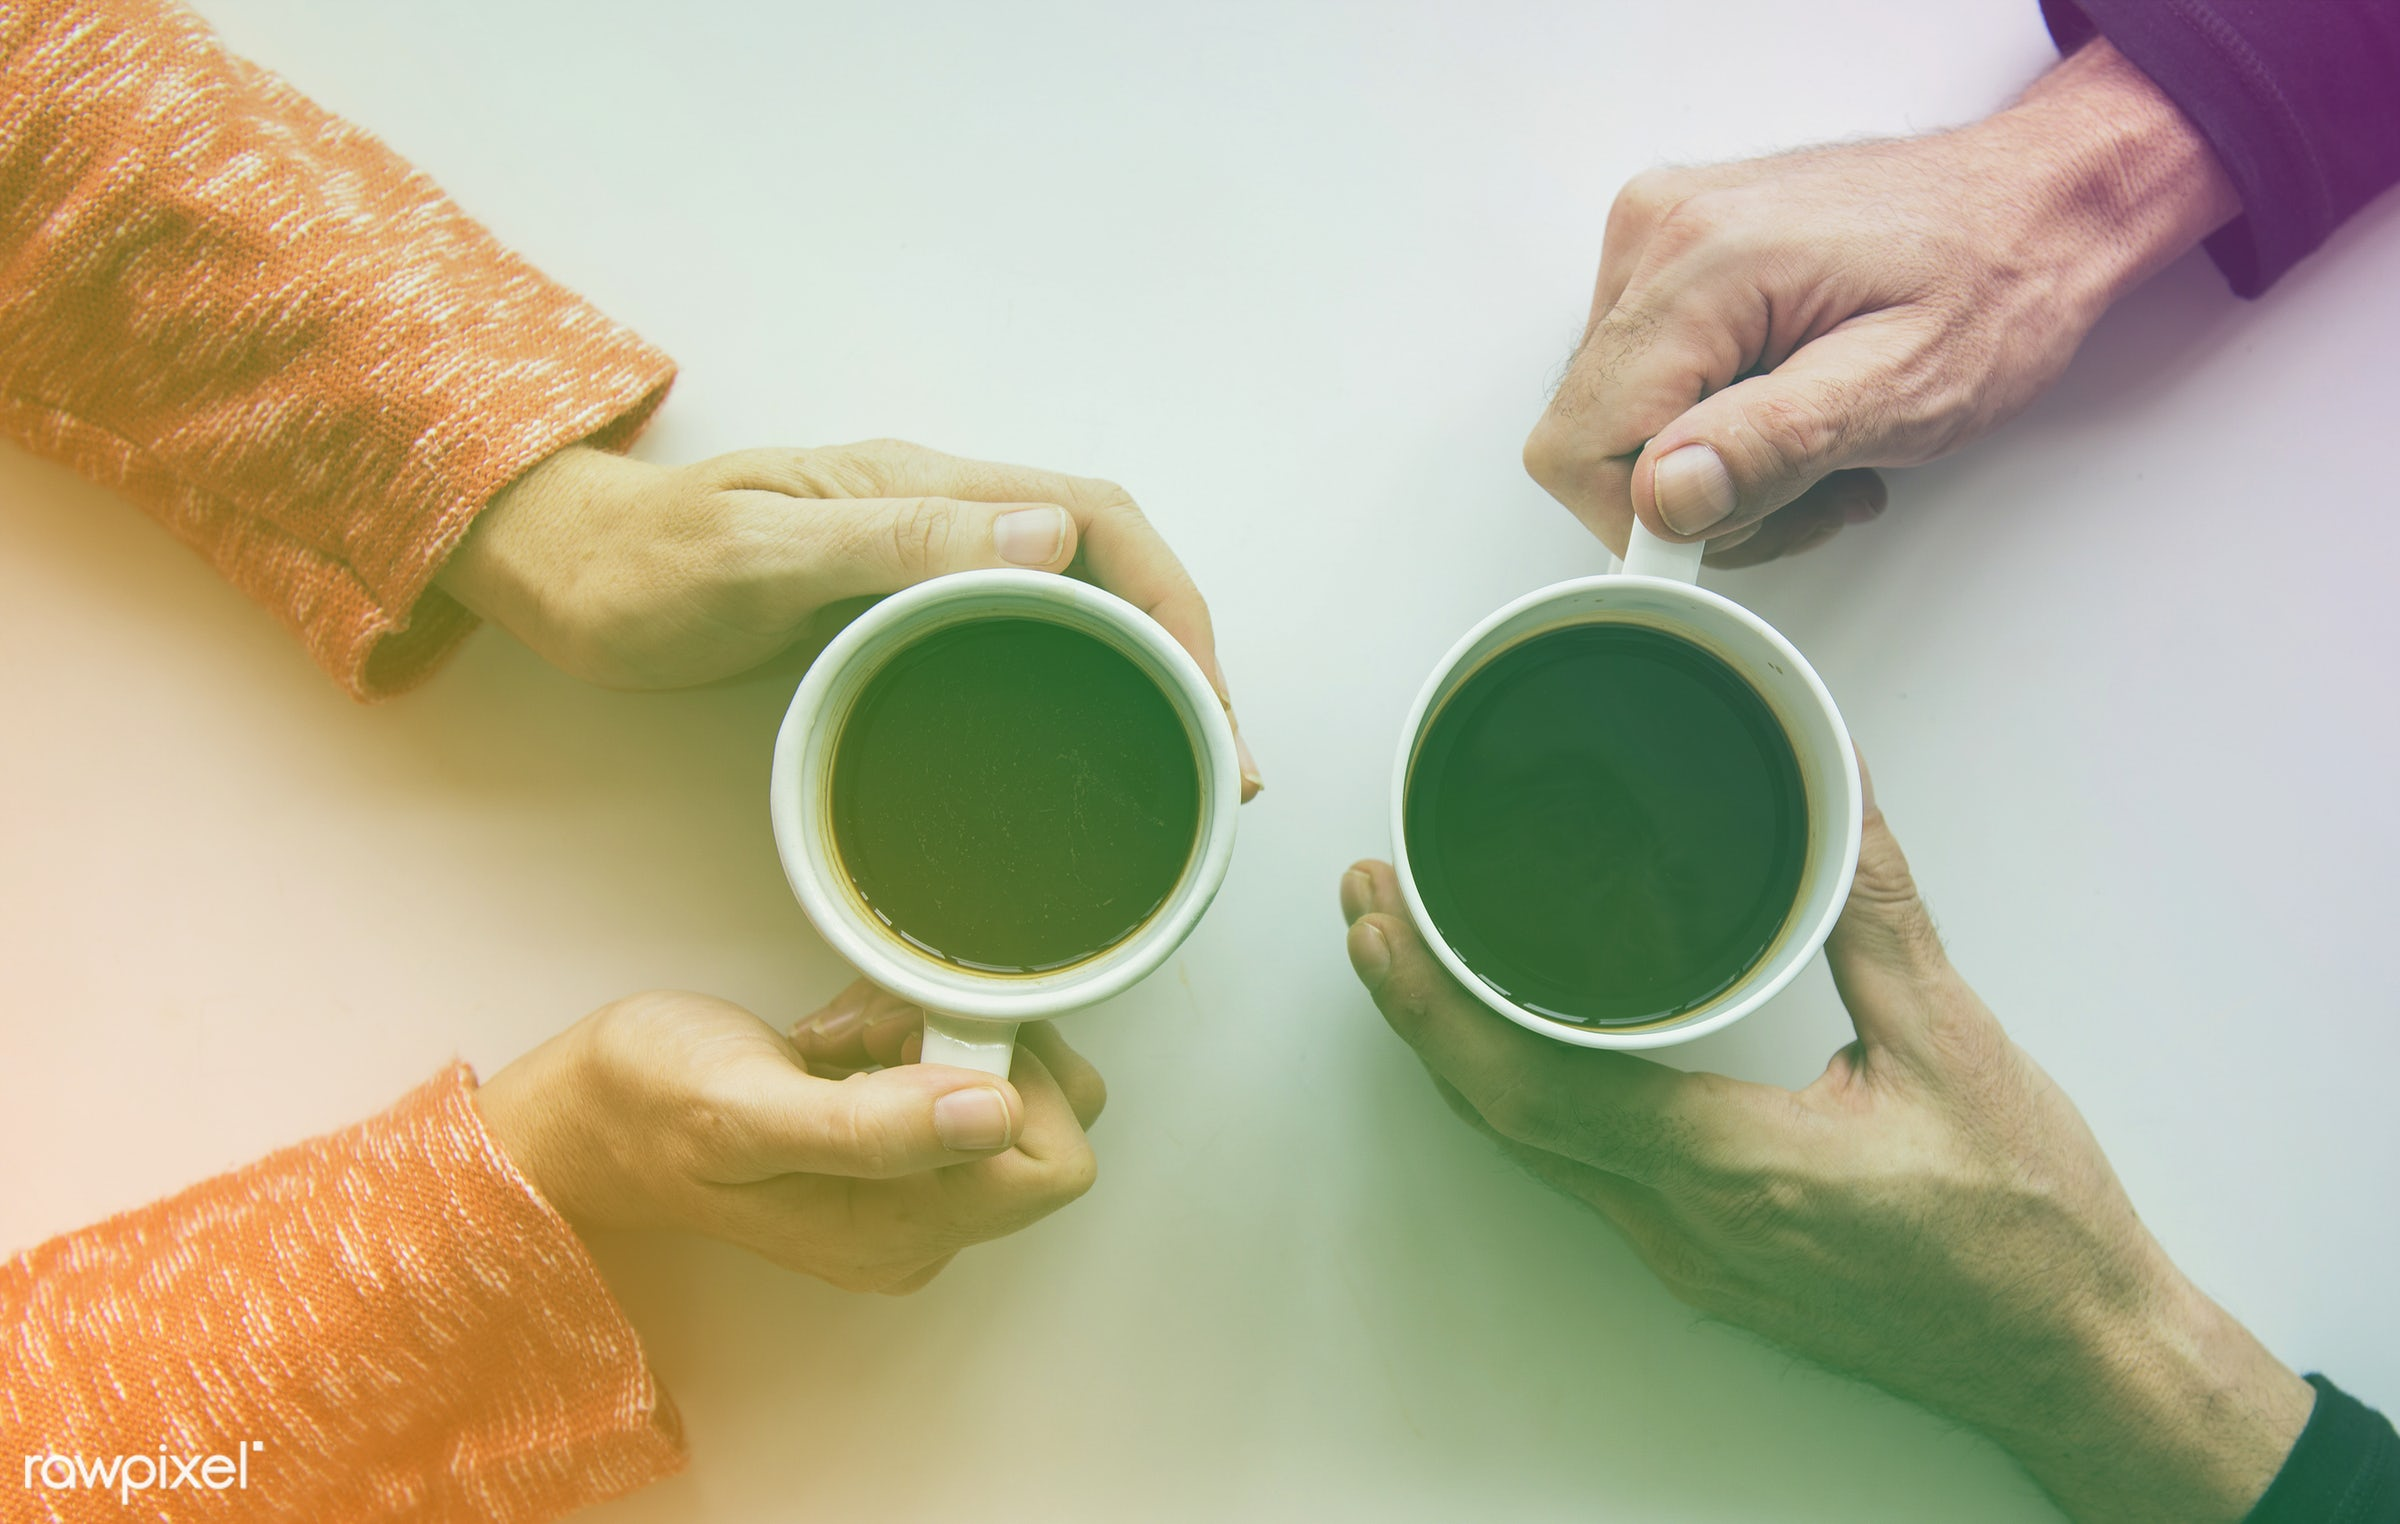 Aerial view of hands holding coffee cups  - concept, person, warm, holding, relax, simple, space, tea, people, hand, mug,...